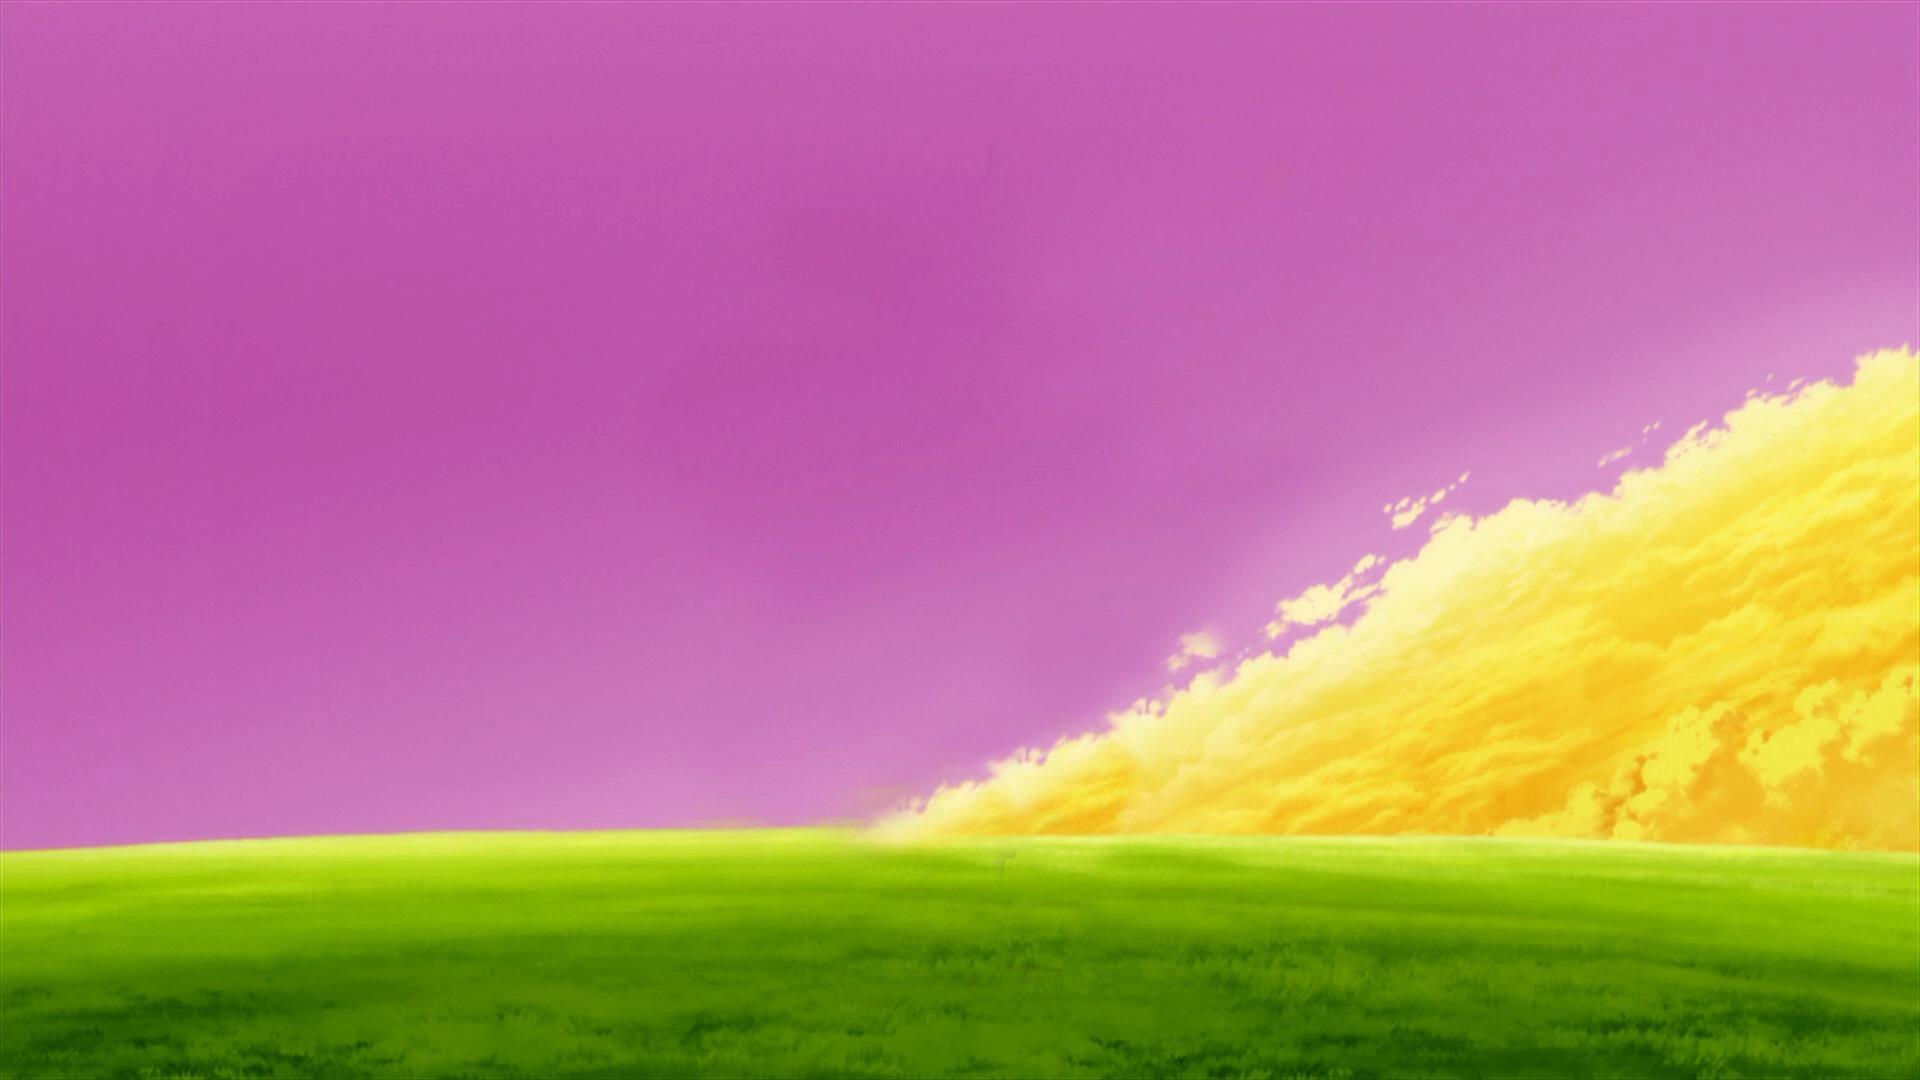 Dragon Ball Z Iphone Wallpaper Kaiosama S World Full Hd Wallpaper And Background